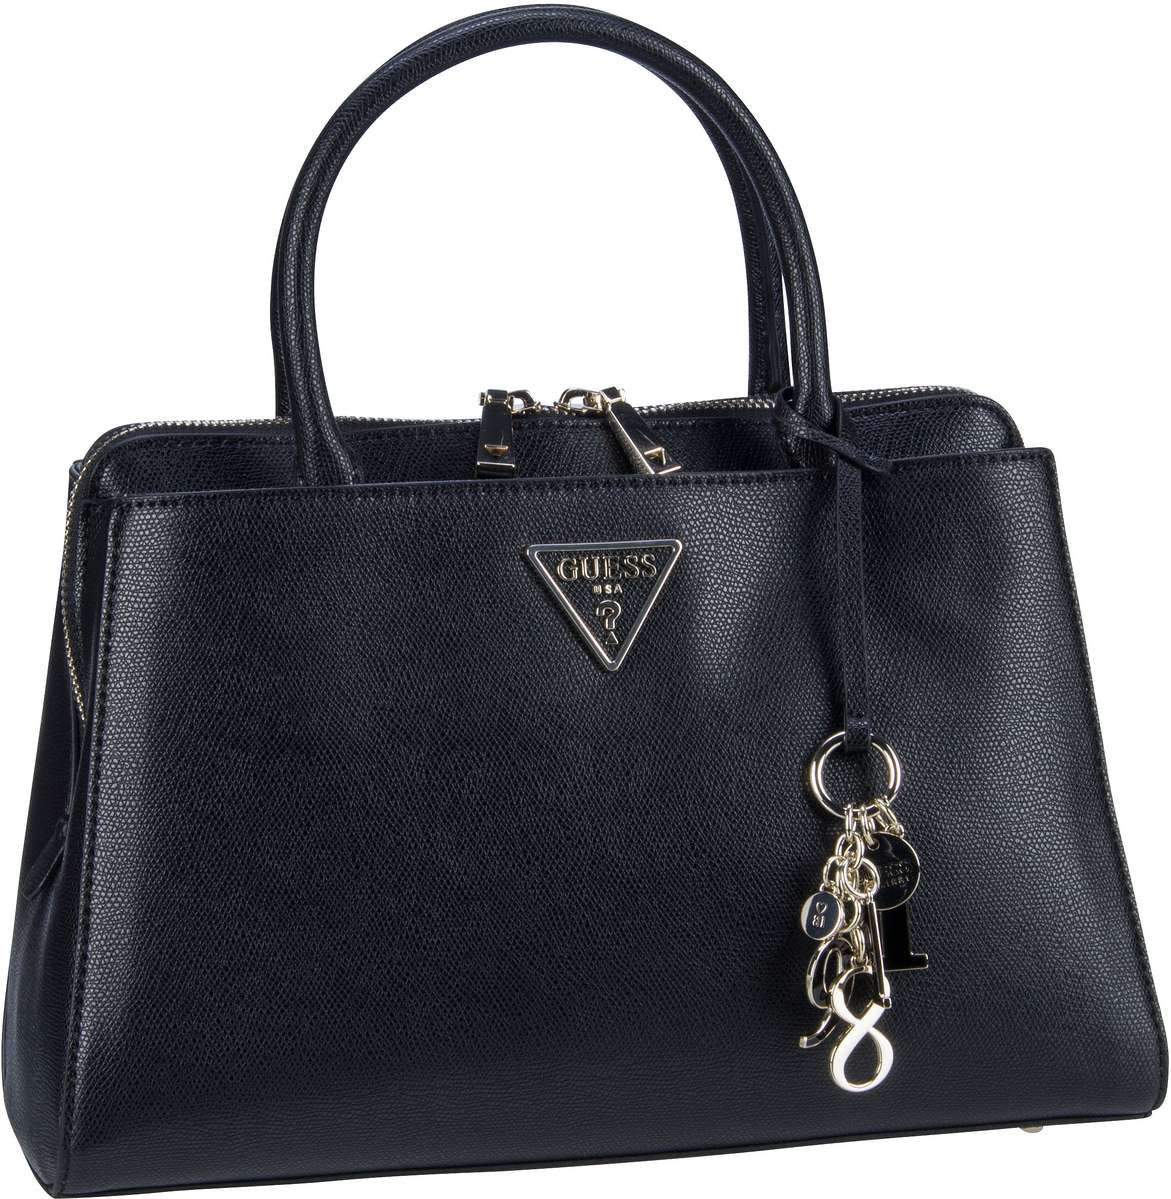 Handtasche Maddy Girlfriend Satchel Black